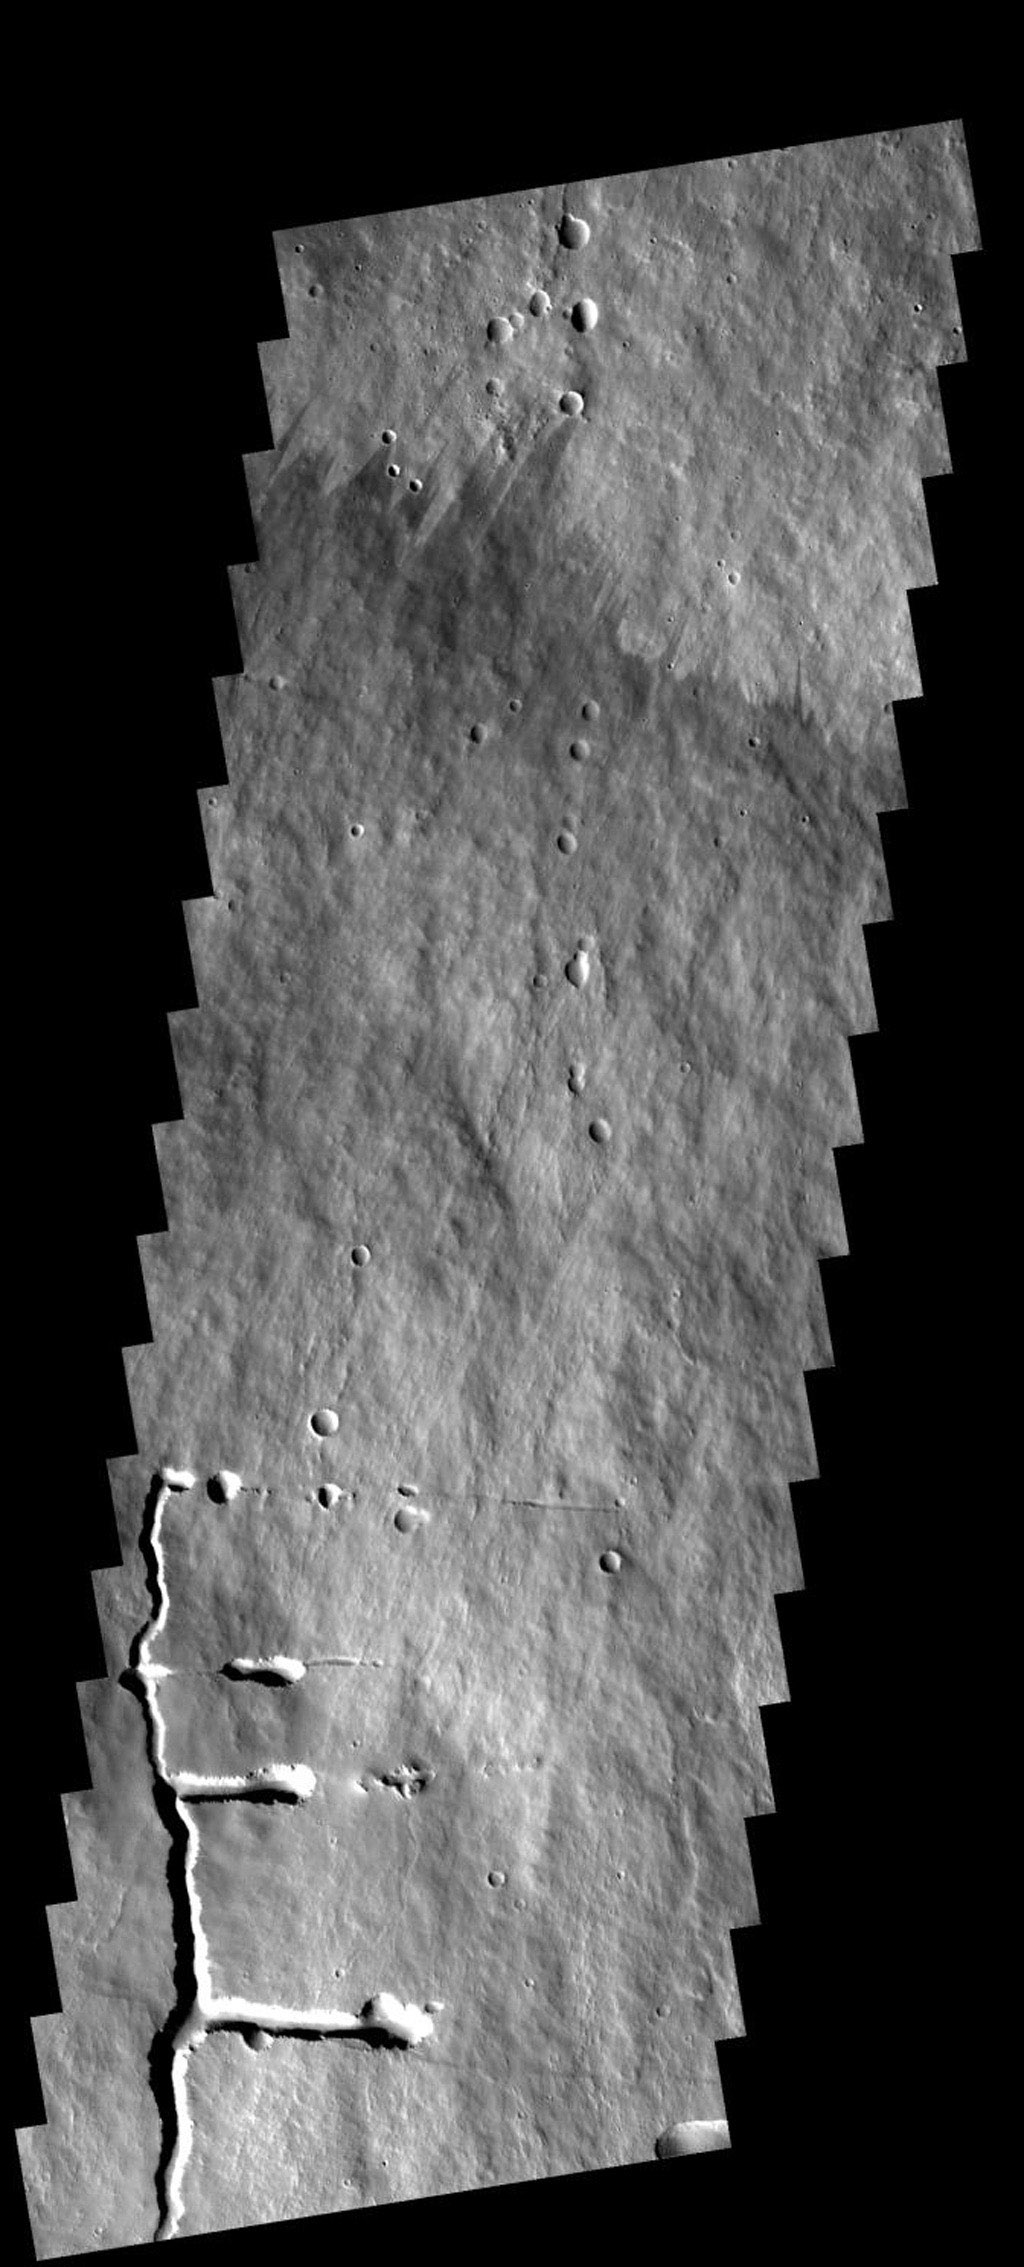 This image shows a portion of the flank of Pavonis Mons on Mars as seen by NASA's 2001 Mars Odyssey spacecraft. The collapse features at the bottom of the image are related to subsurface tubes that once contained lava.